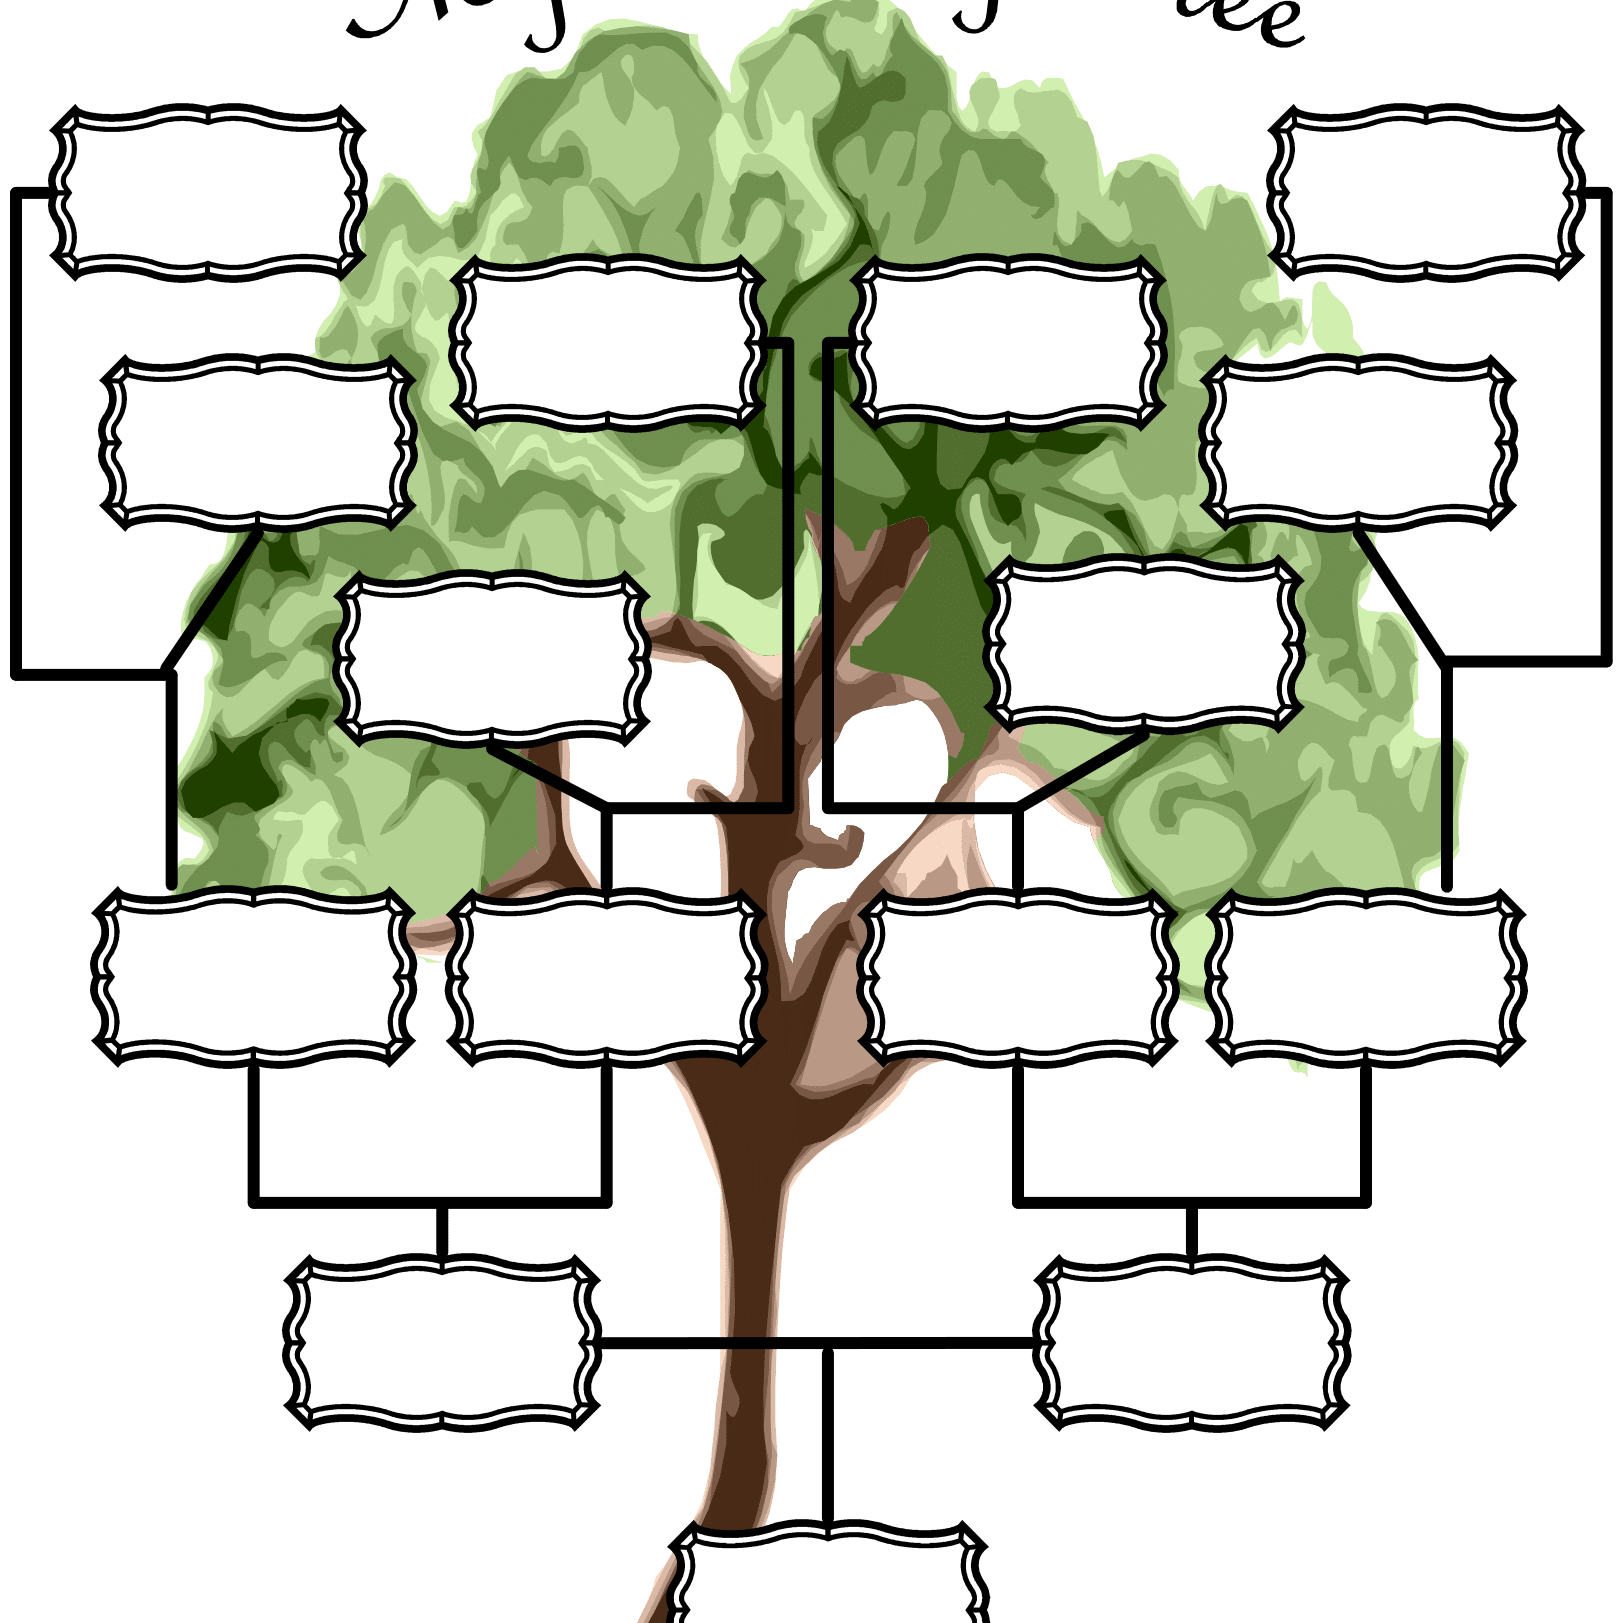 It's just an image of Légend Printable Genealogy Chart